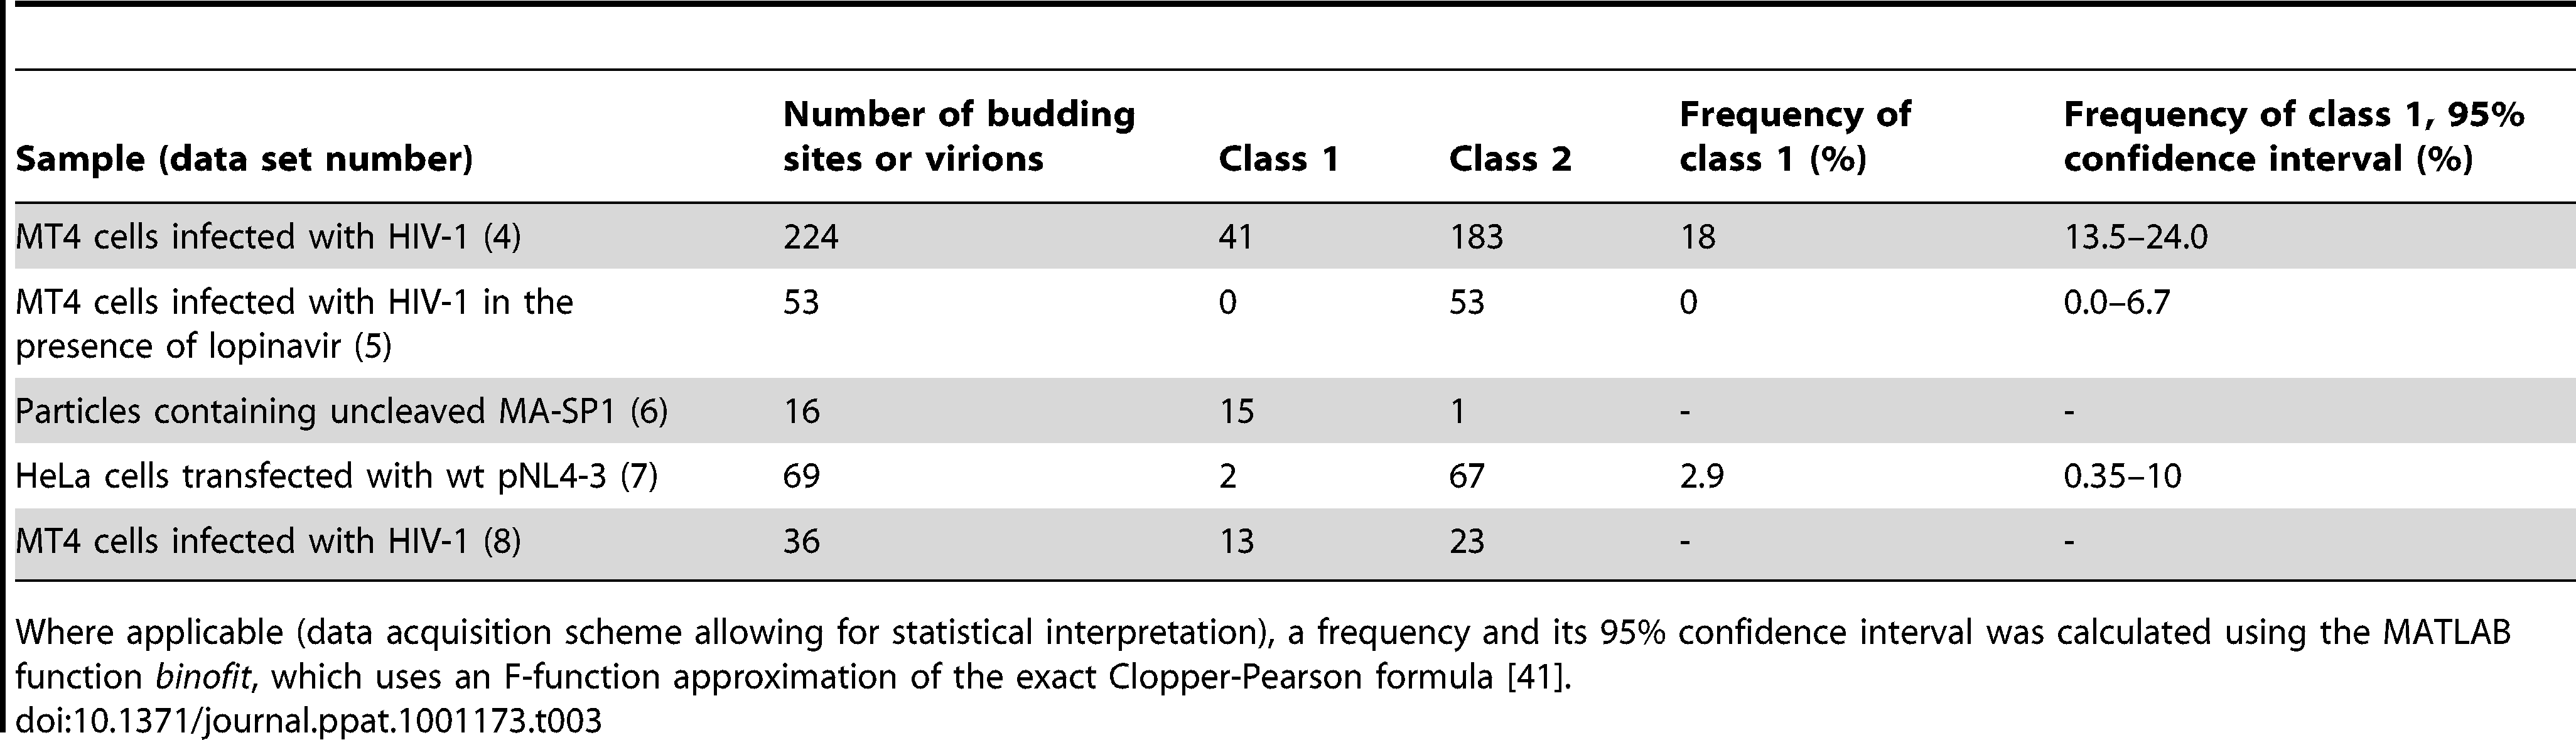 Number of budding sites or virions assigned to class 1 and class 2 Gag layer morphology, respectively, for the different sample groups.